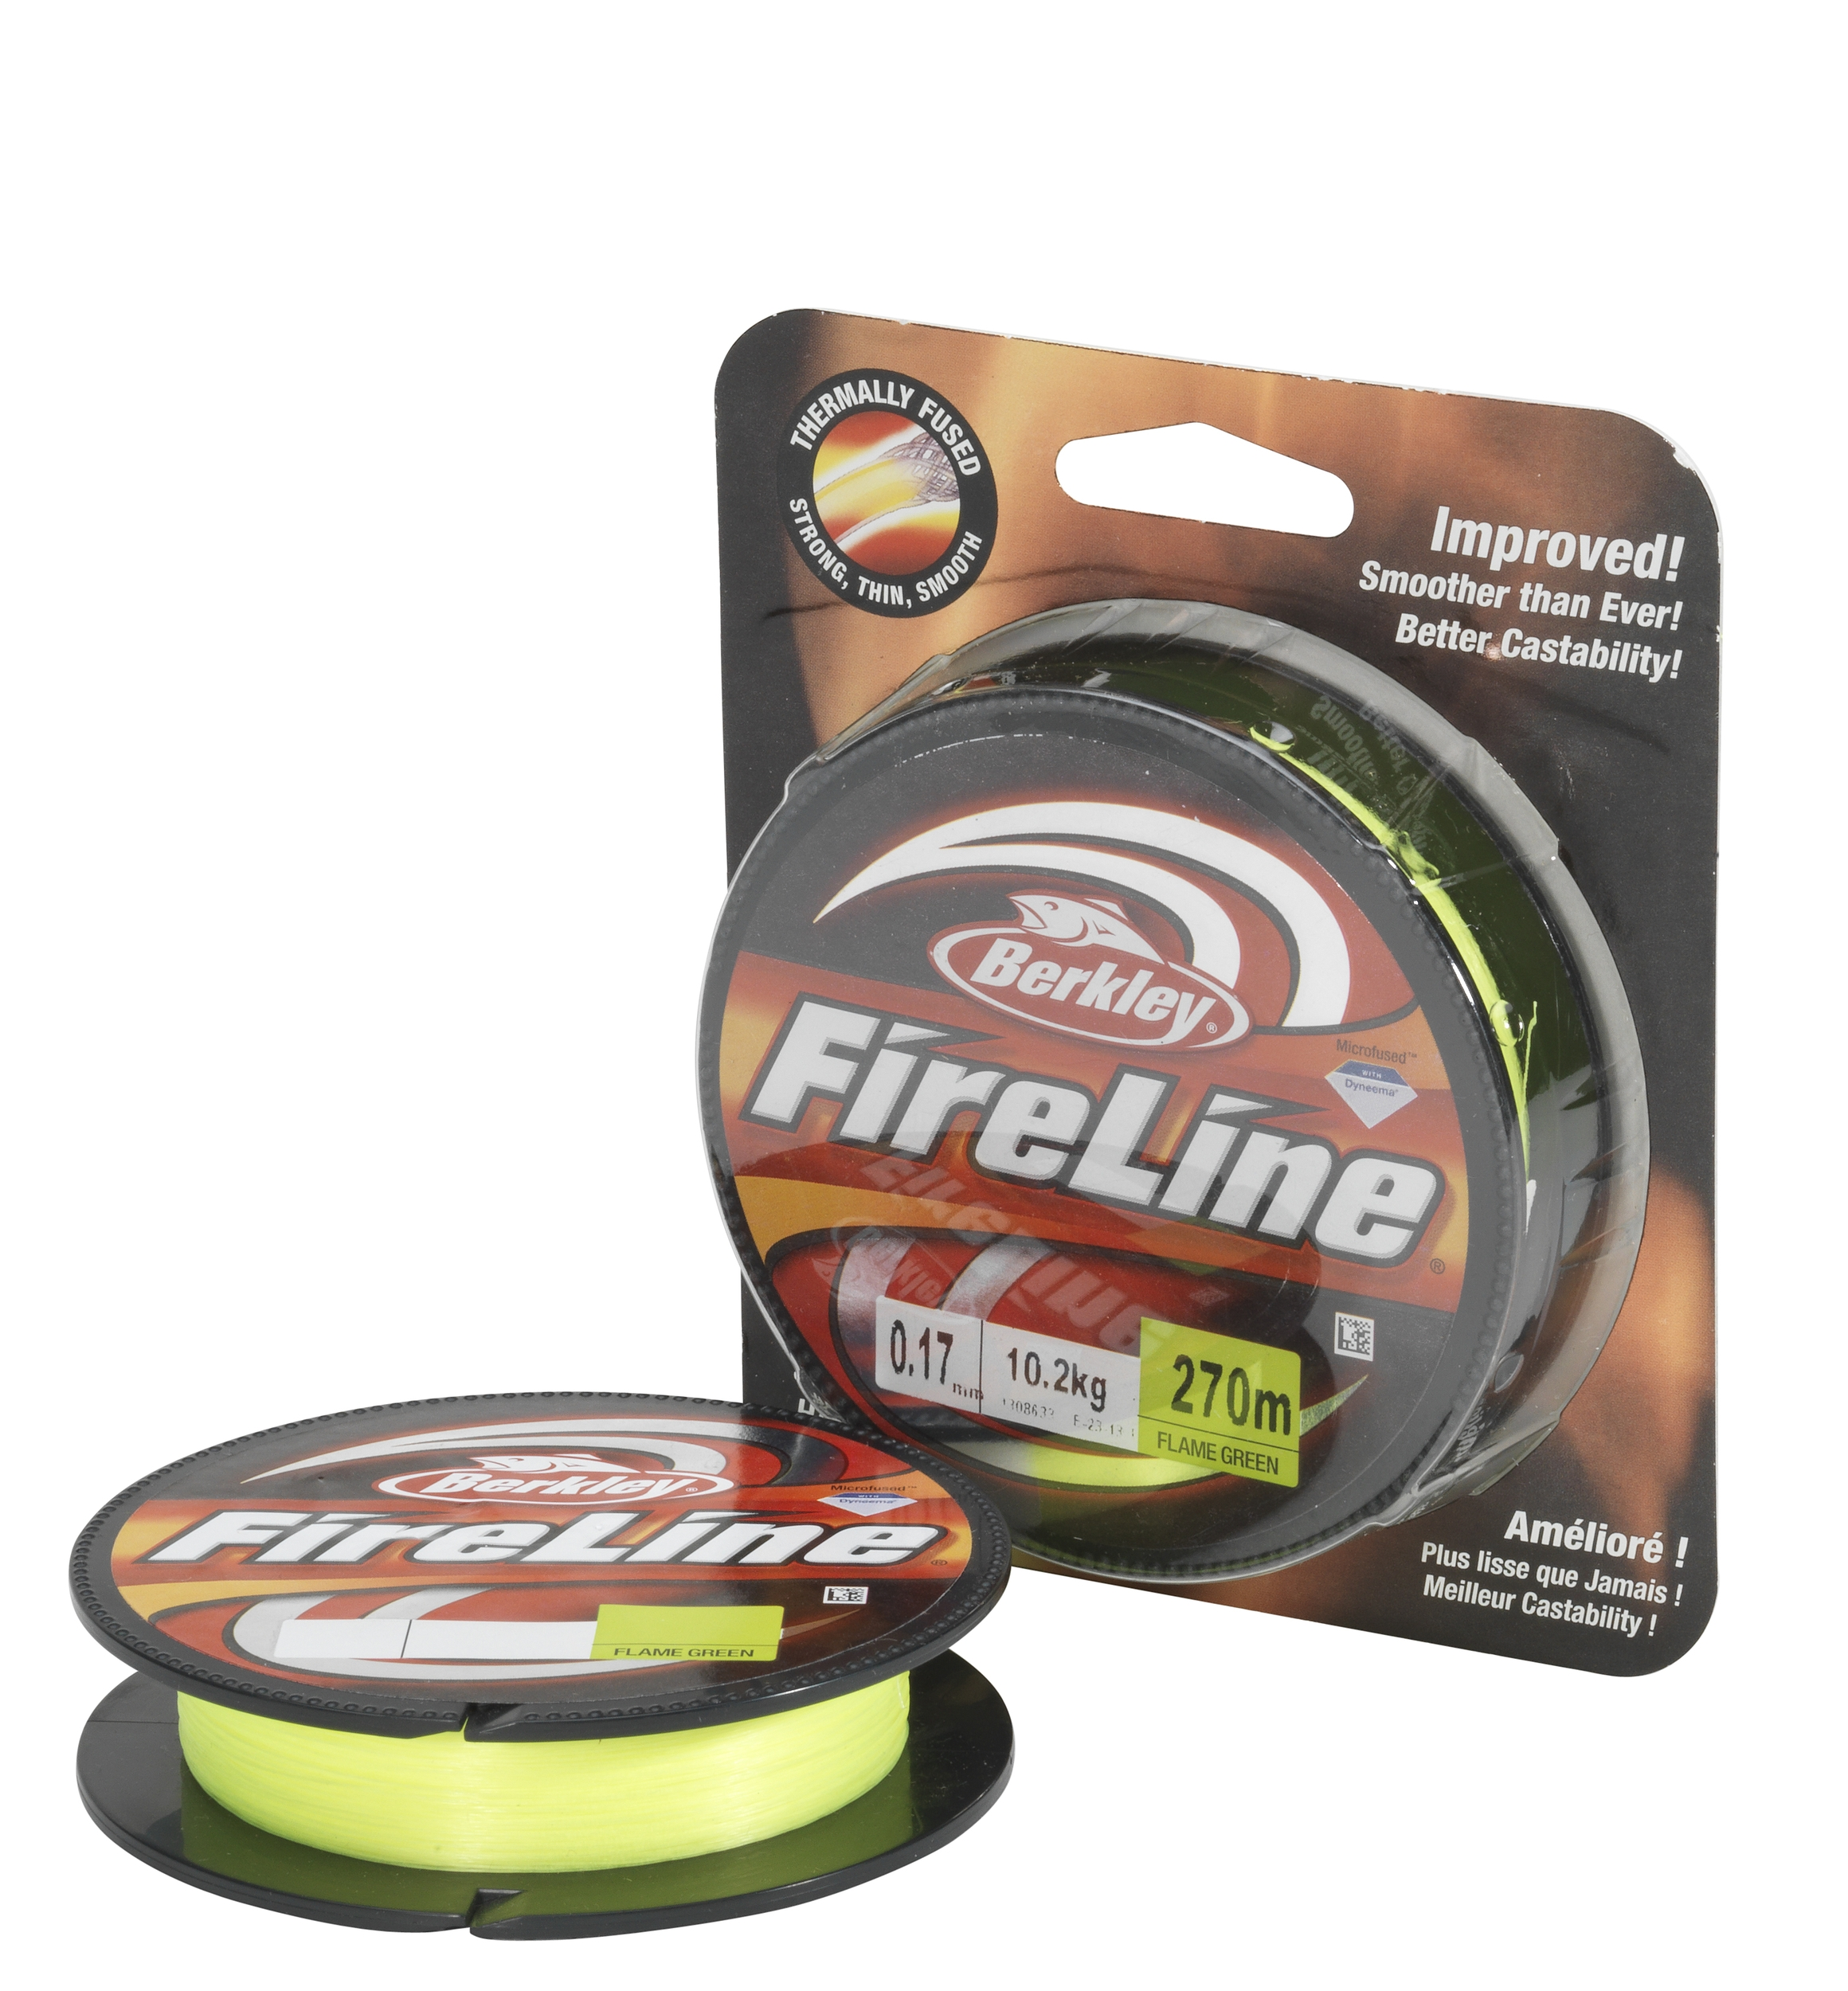 Шнур Berkley FireLine Flame Green EFLNFS17-GG зеленый  110m 0.17mm 10.2kg